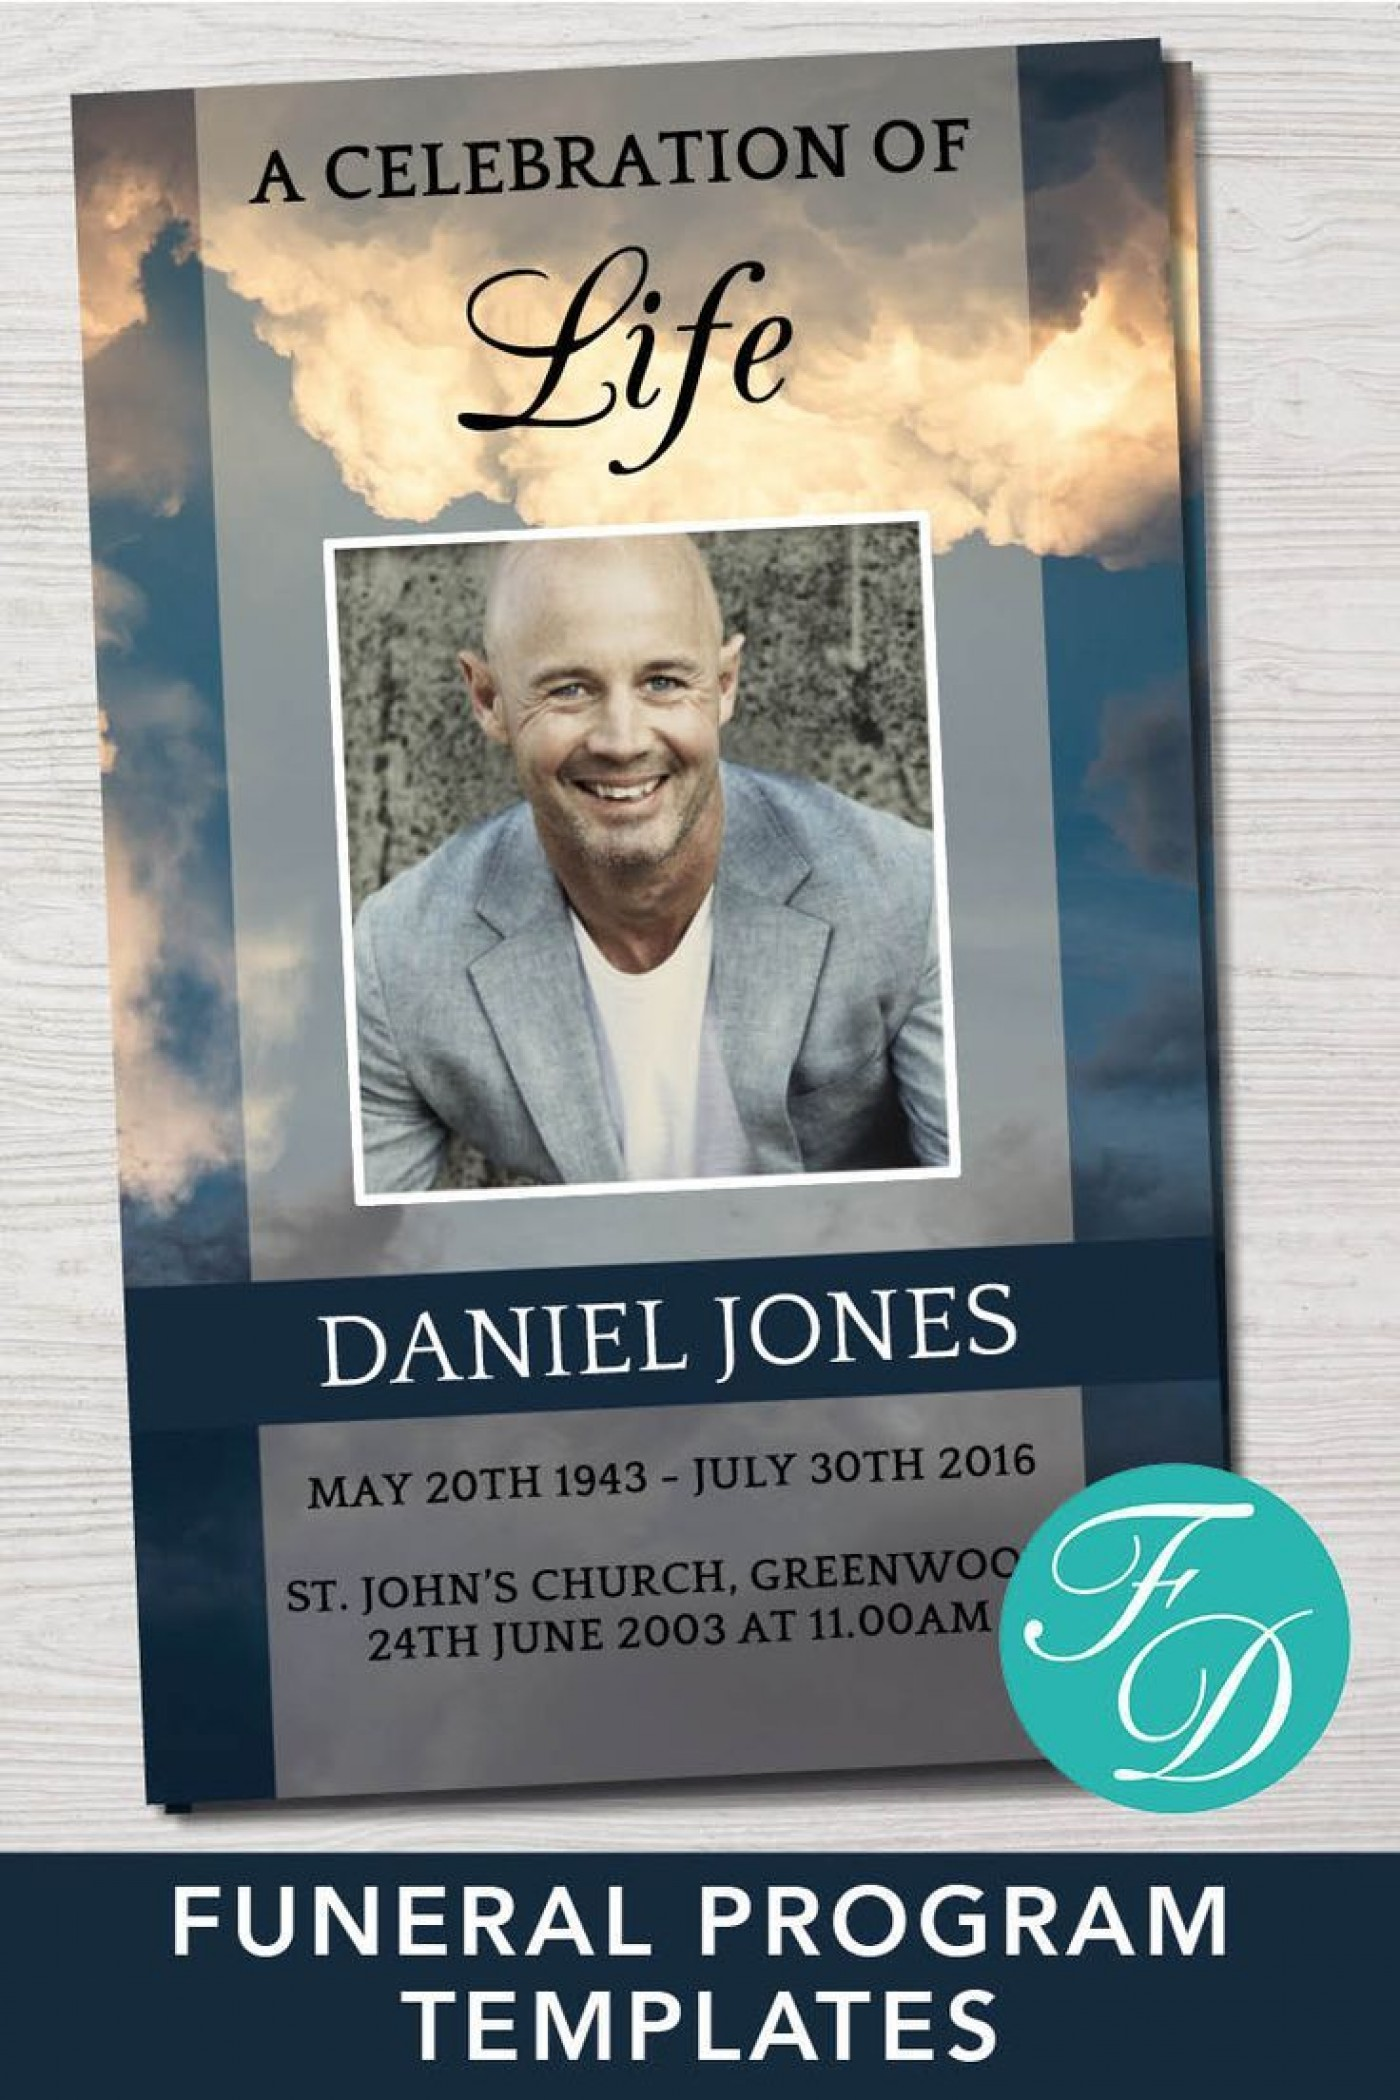 001 Simple Free Celebration Of Life Program Template Download Example 1400